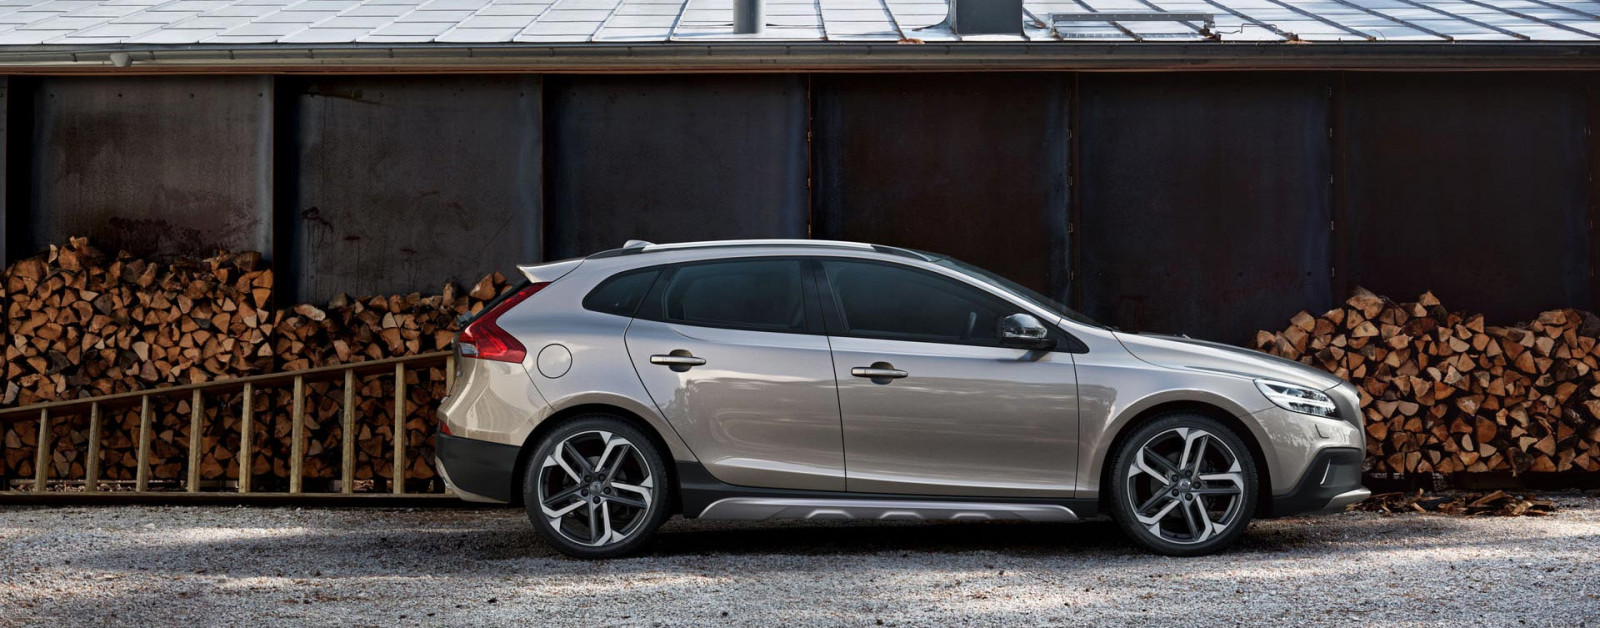 V40 Cross Country